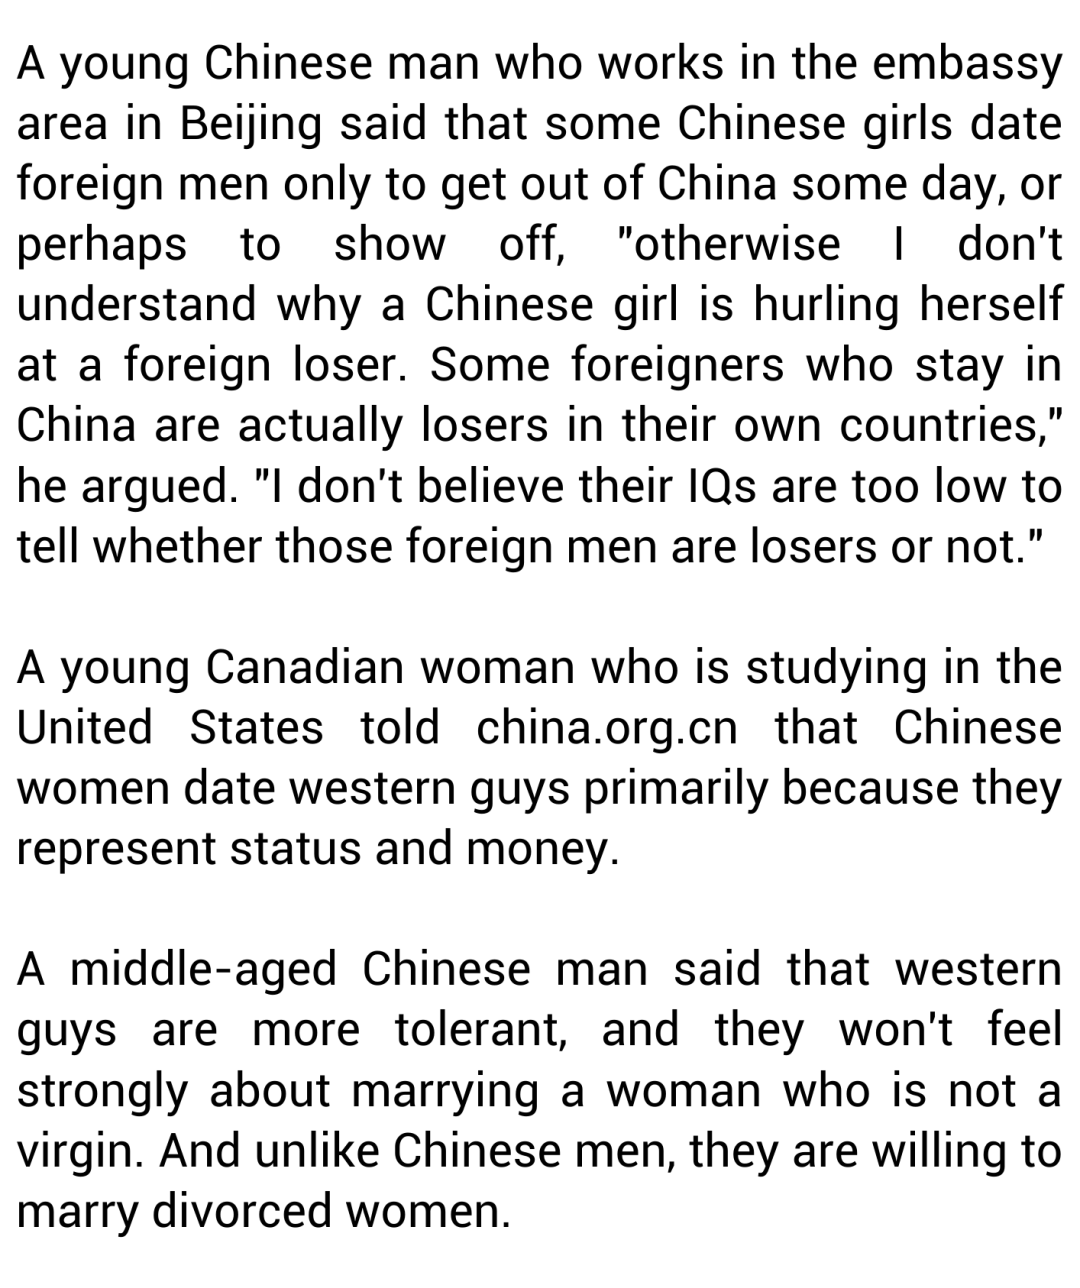 Why Do Chinese Women Date Western Men?